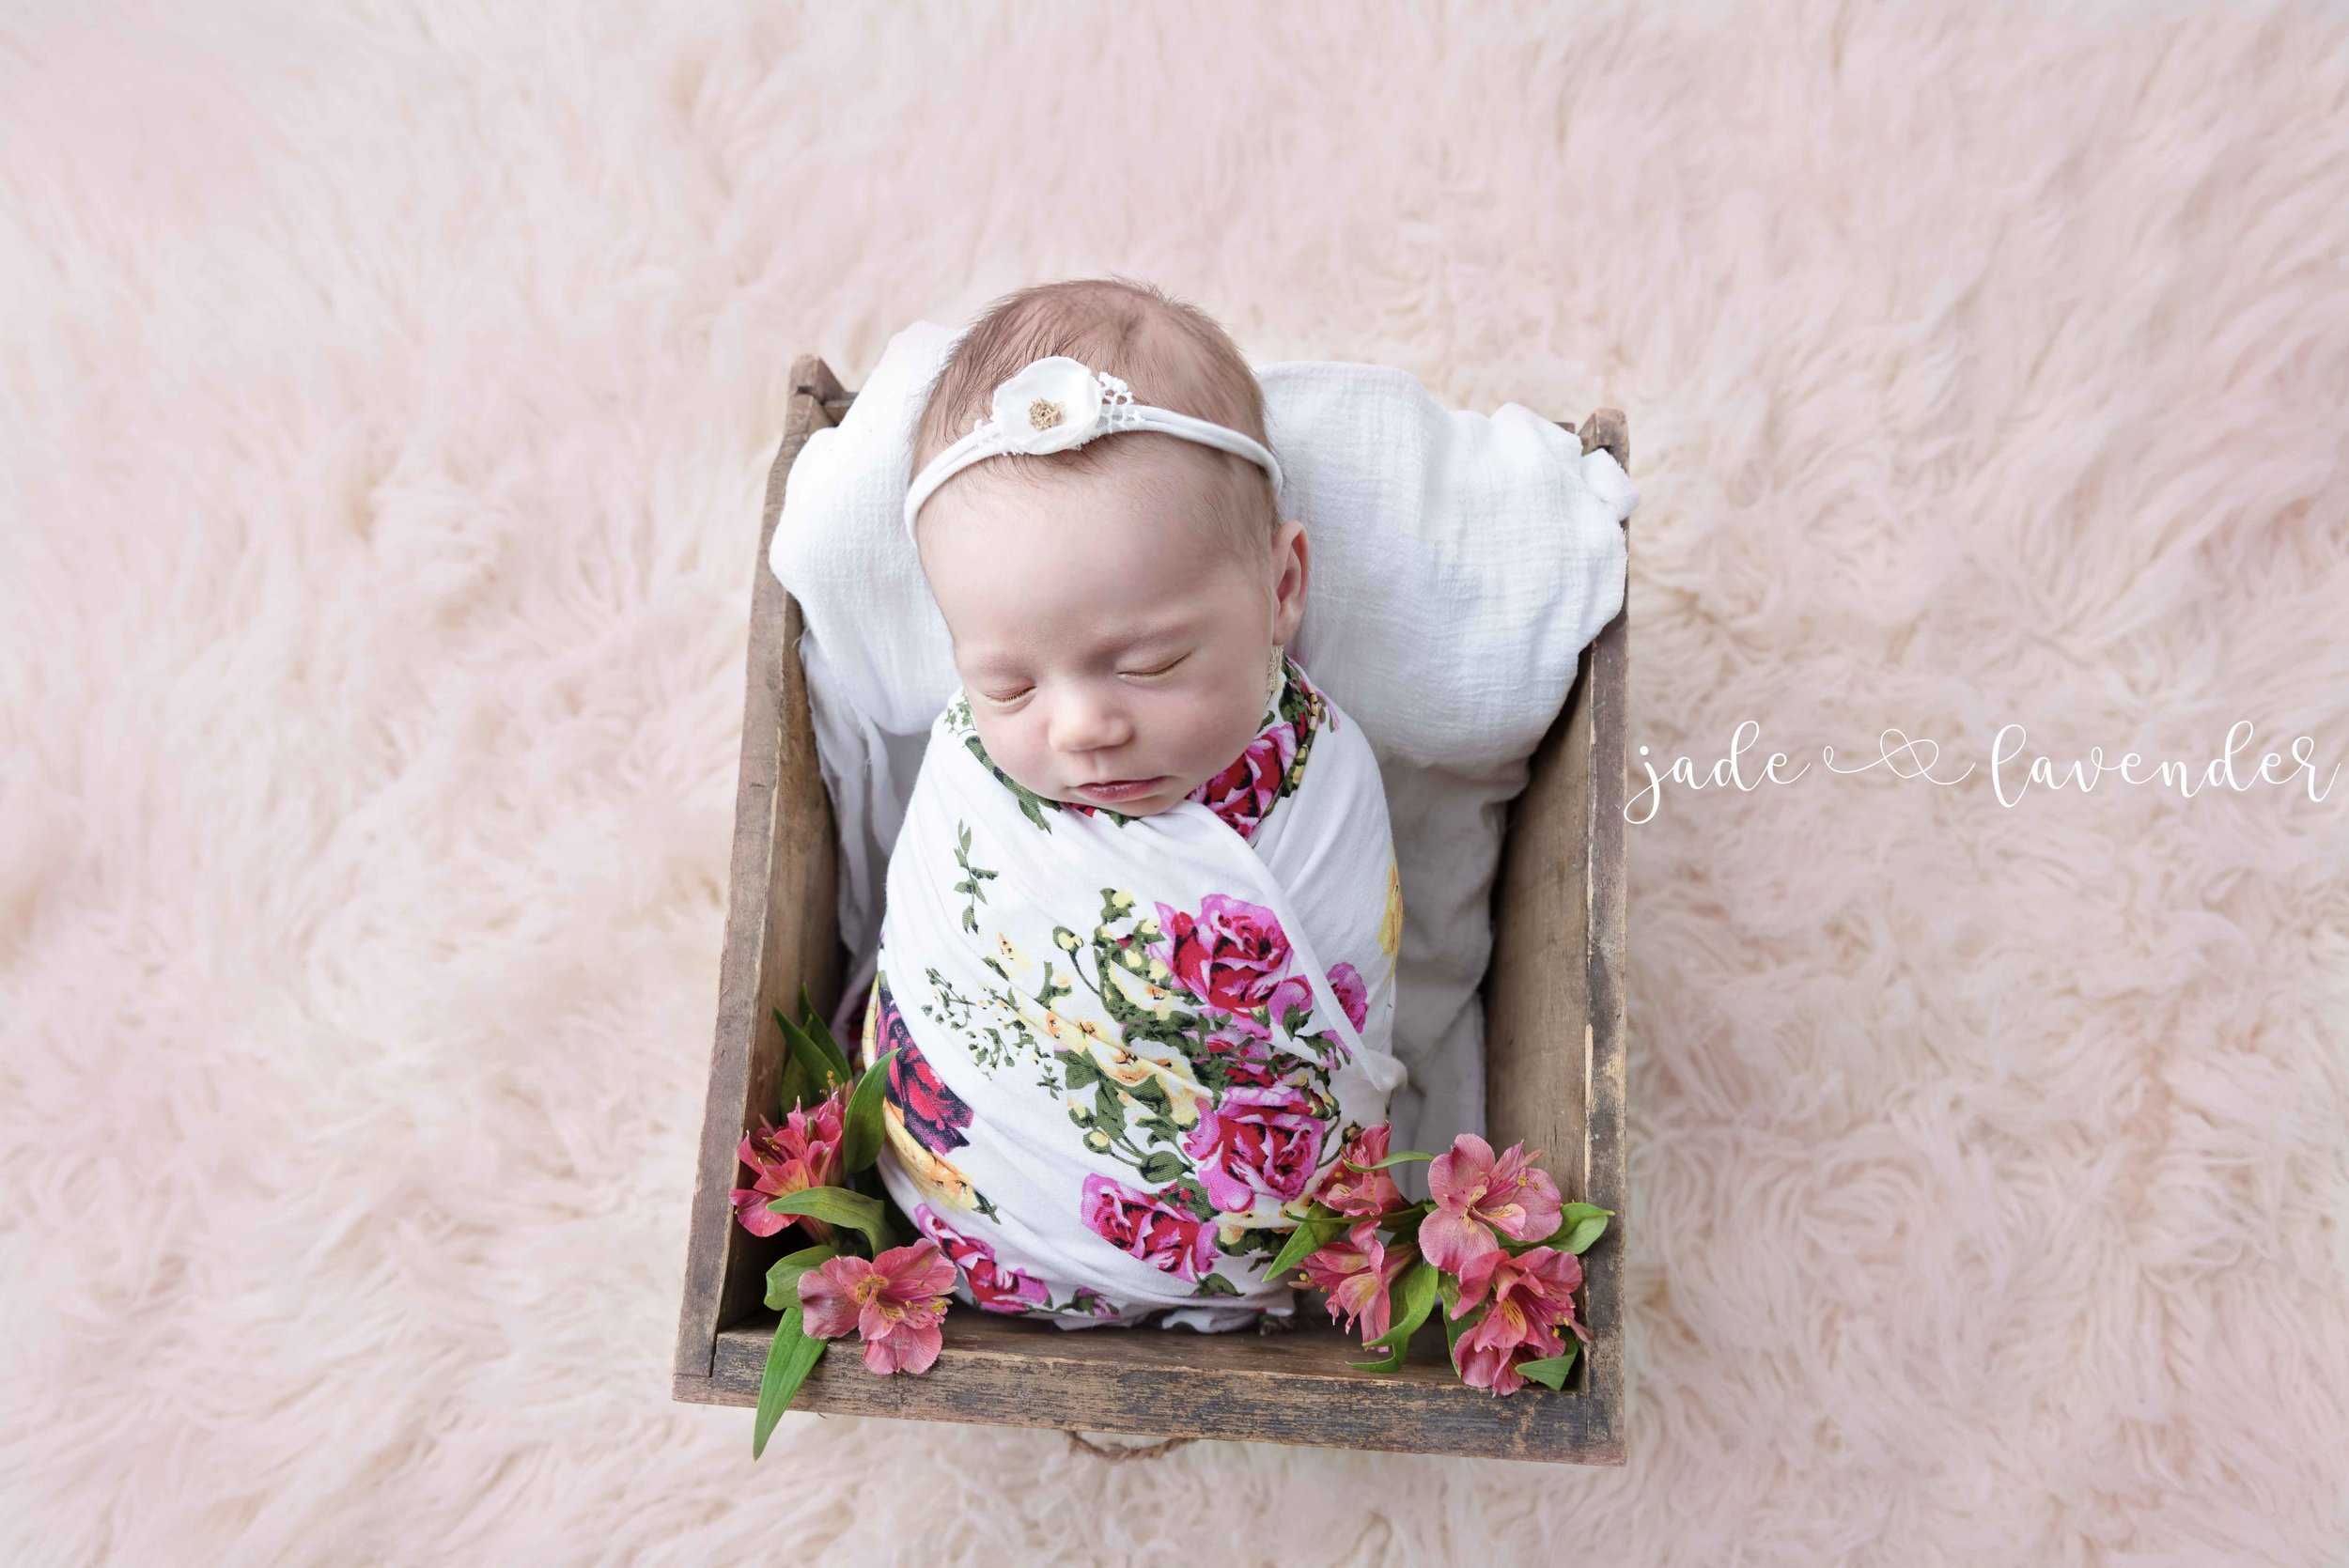 newborn-photos-infant-photography-cute-spokane-washington.jpg